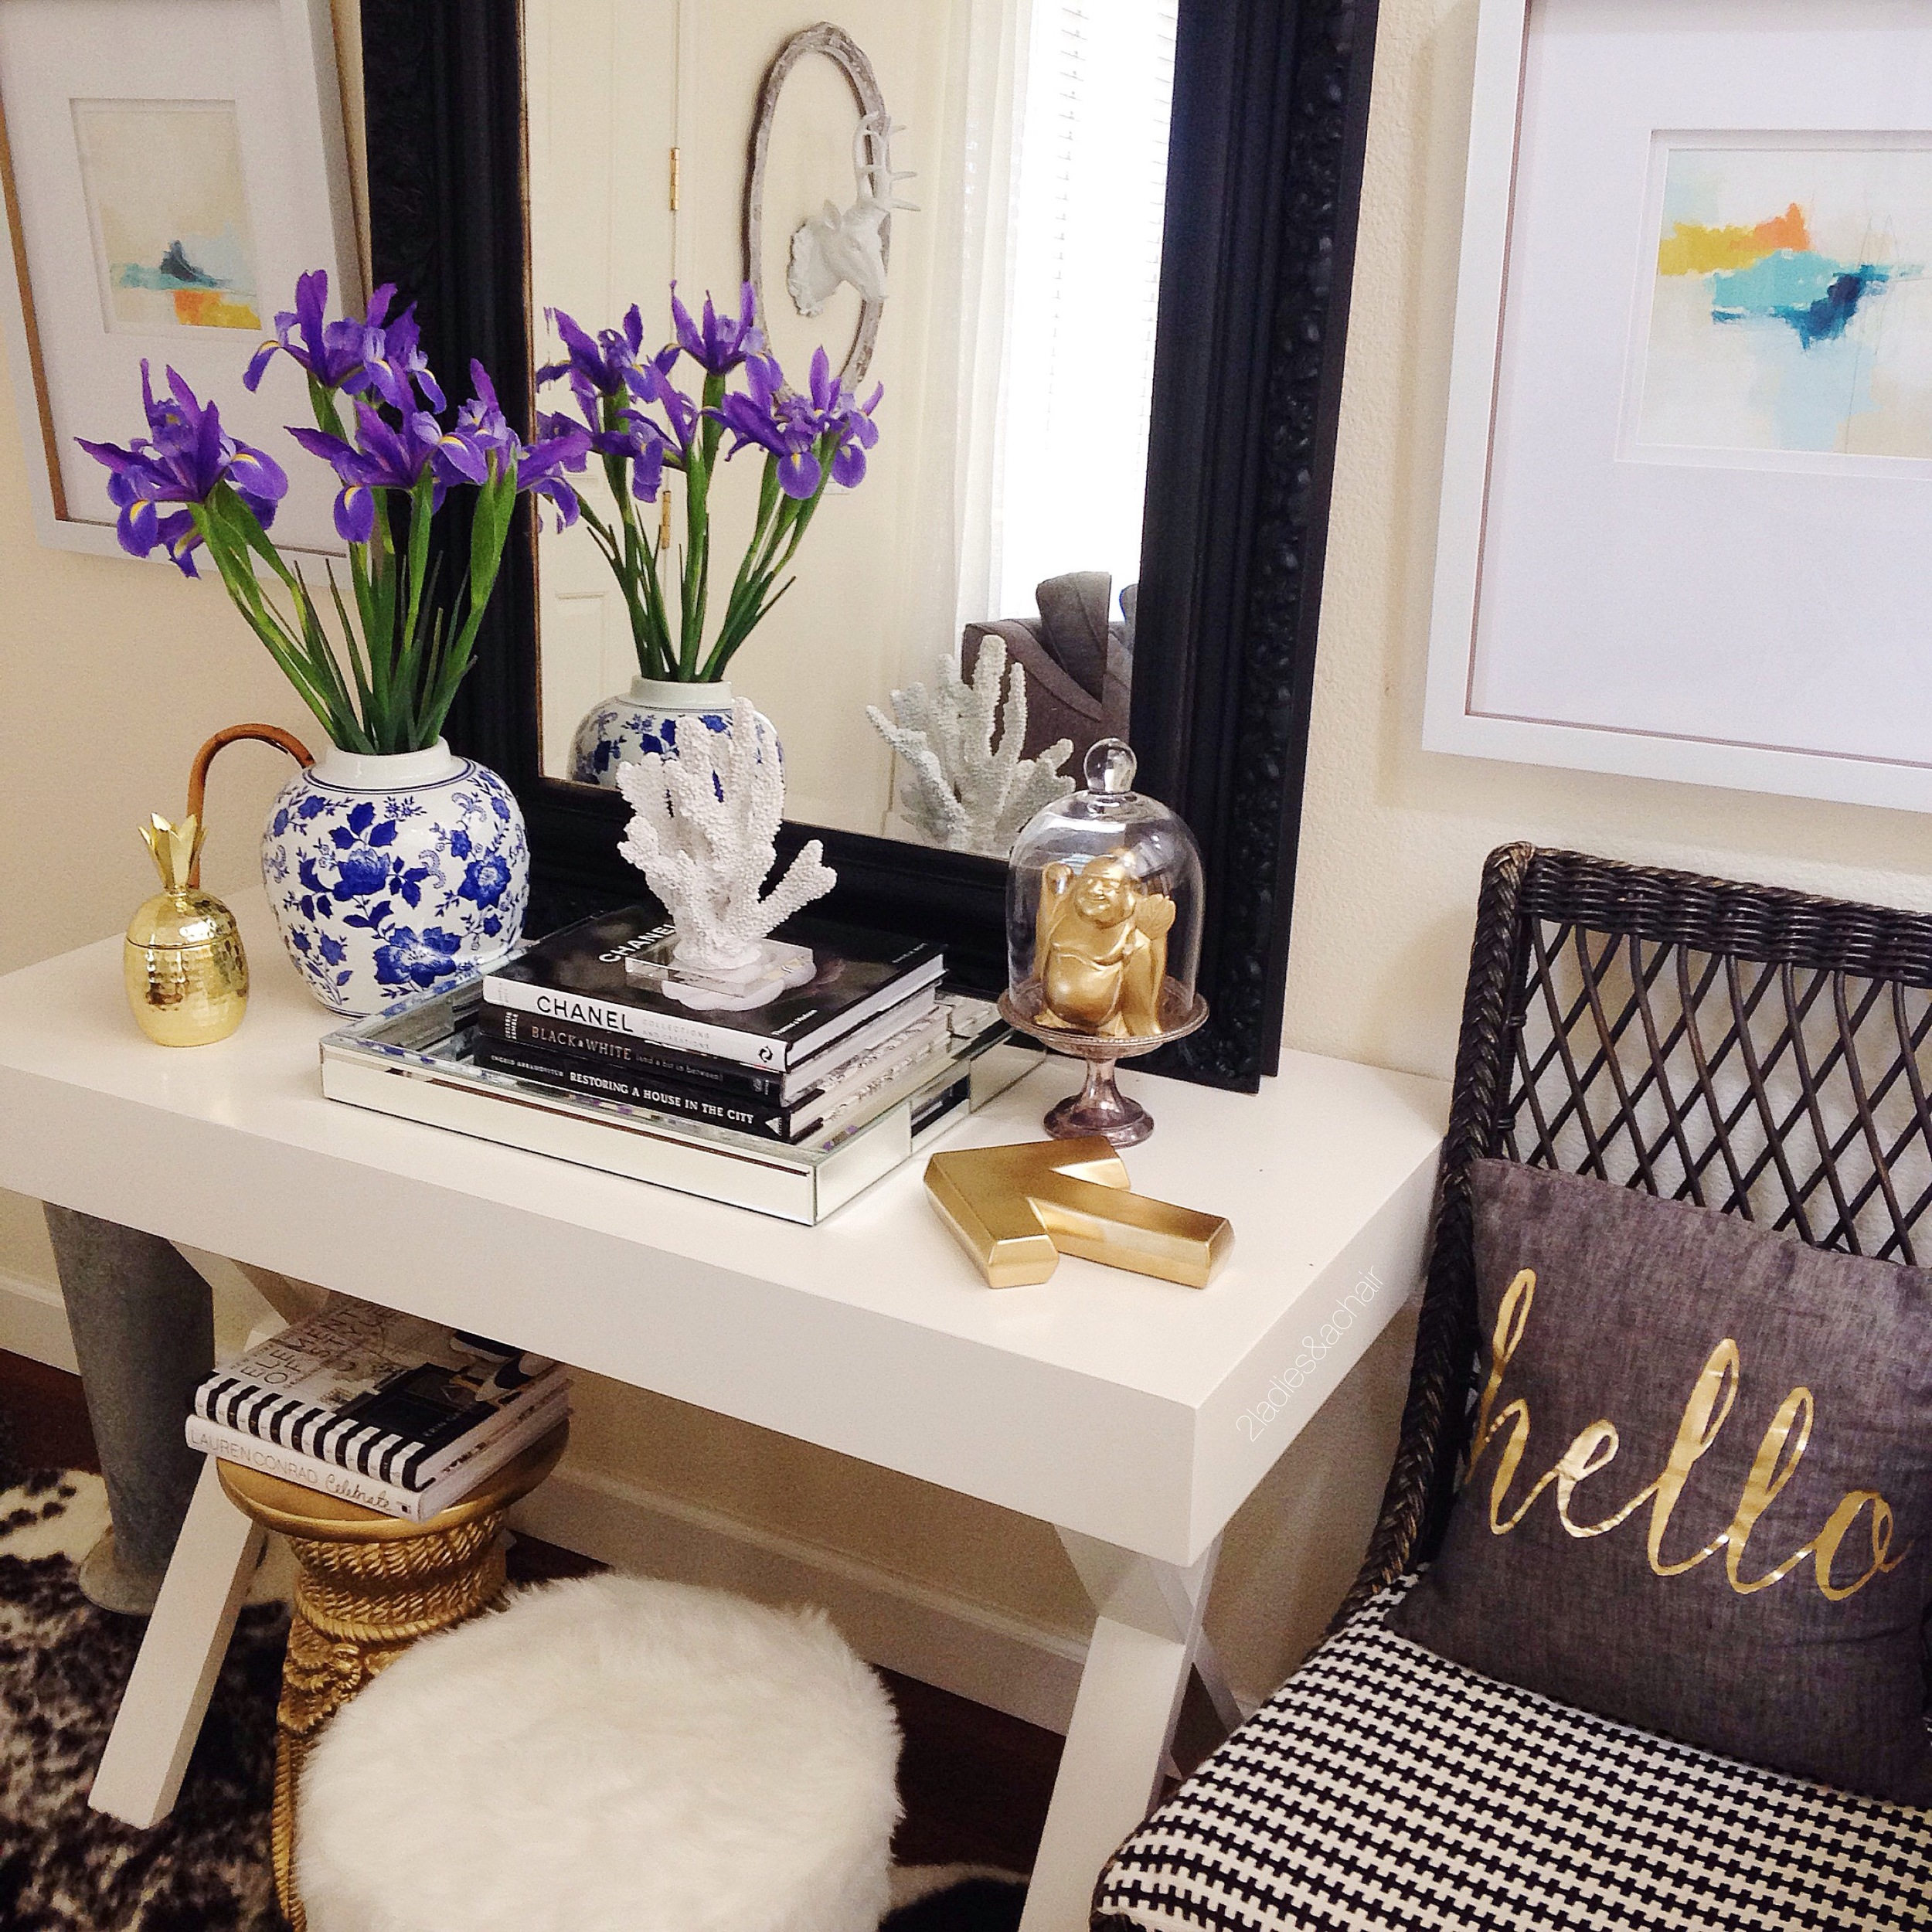 This entryway has many different competing styles: modern artwork, vintage mirror, sleek table, traditional vase, funky stools, and an outdoor wicker chair.